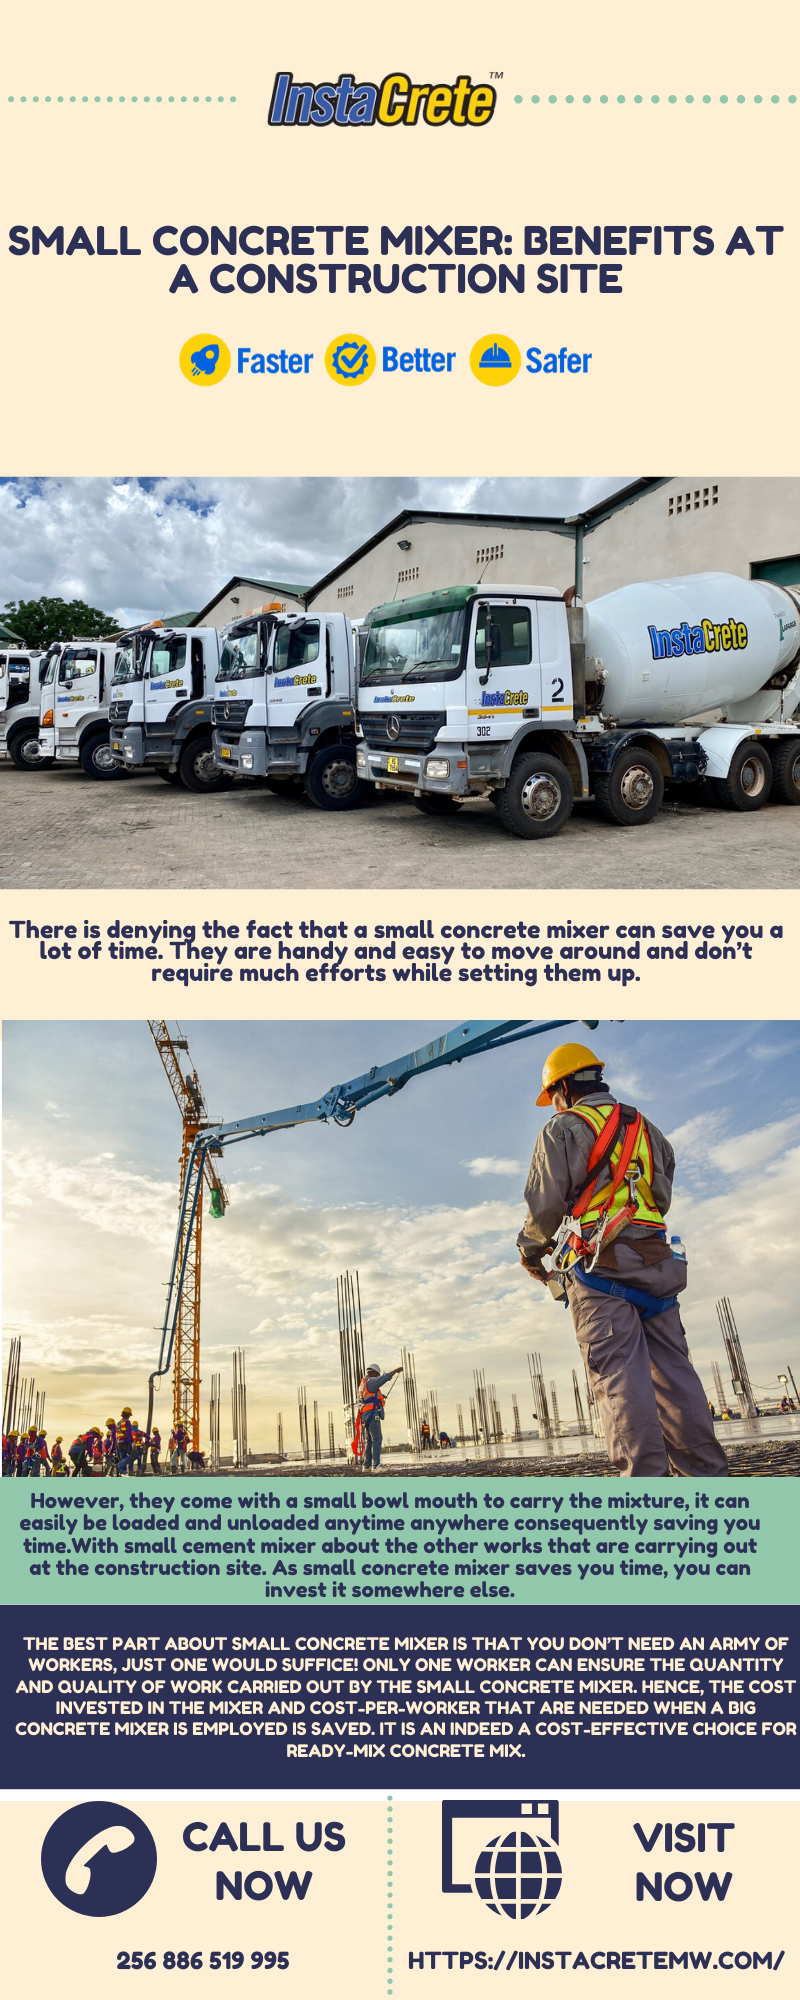 Small Concrete Mixer: Benefits At A Construction Site